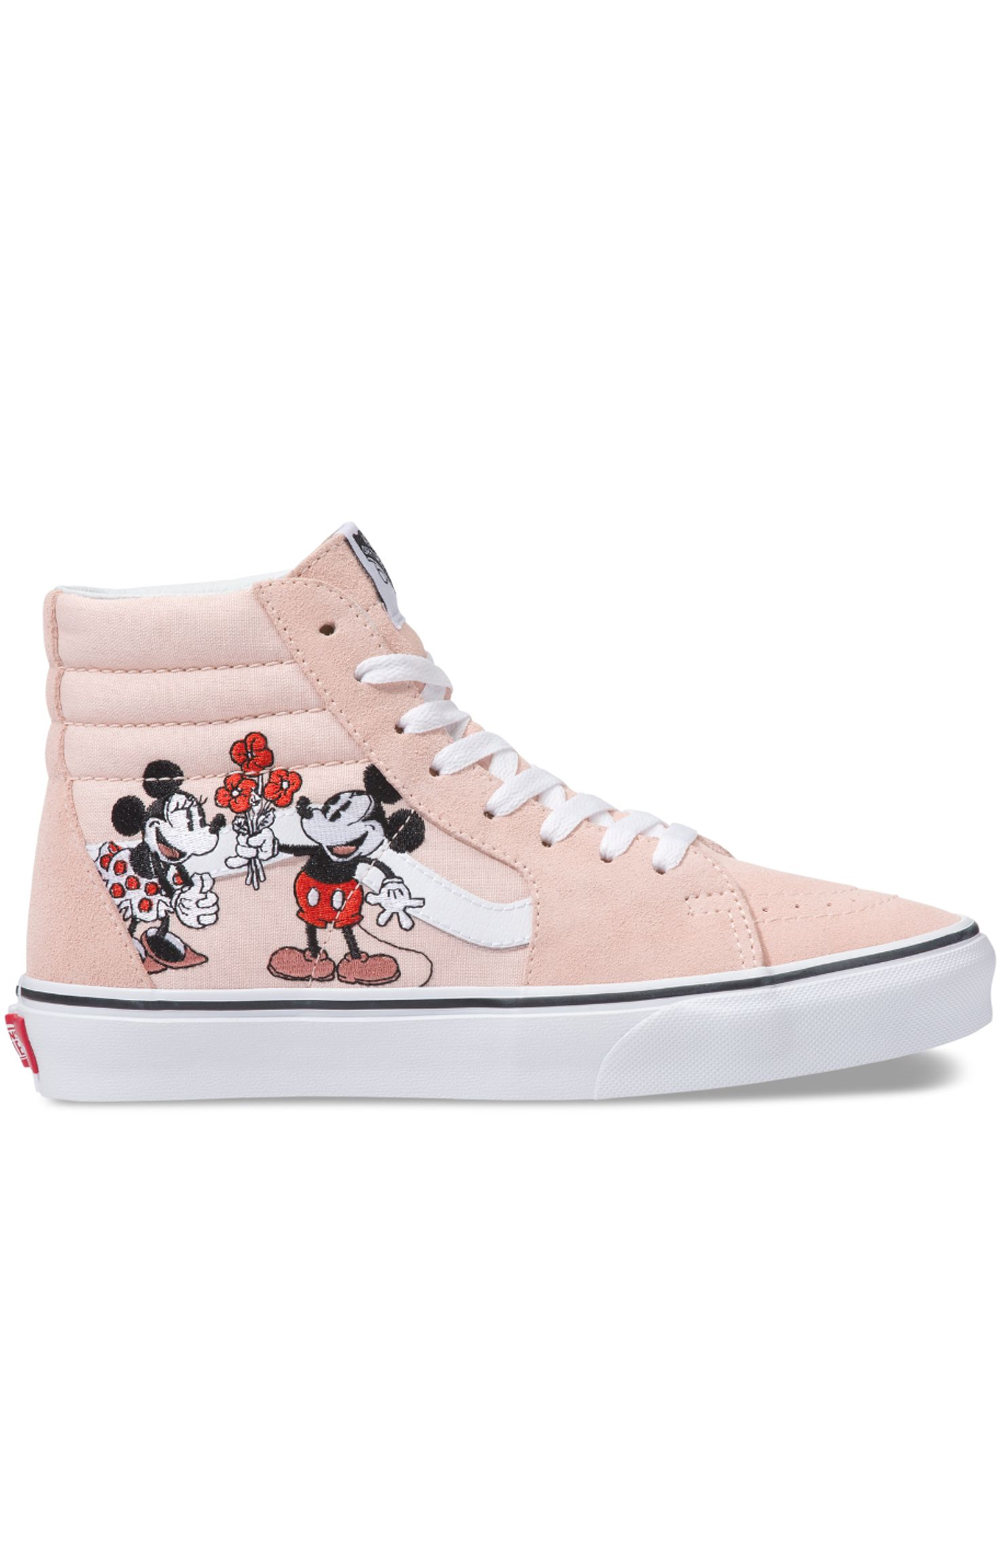 (8GEUPN) Sk8-Hi Shoe - Mickey Mouse And Minnie Mouse fbbb3b802b3